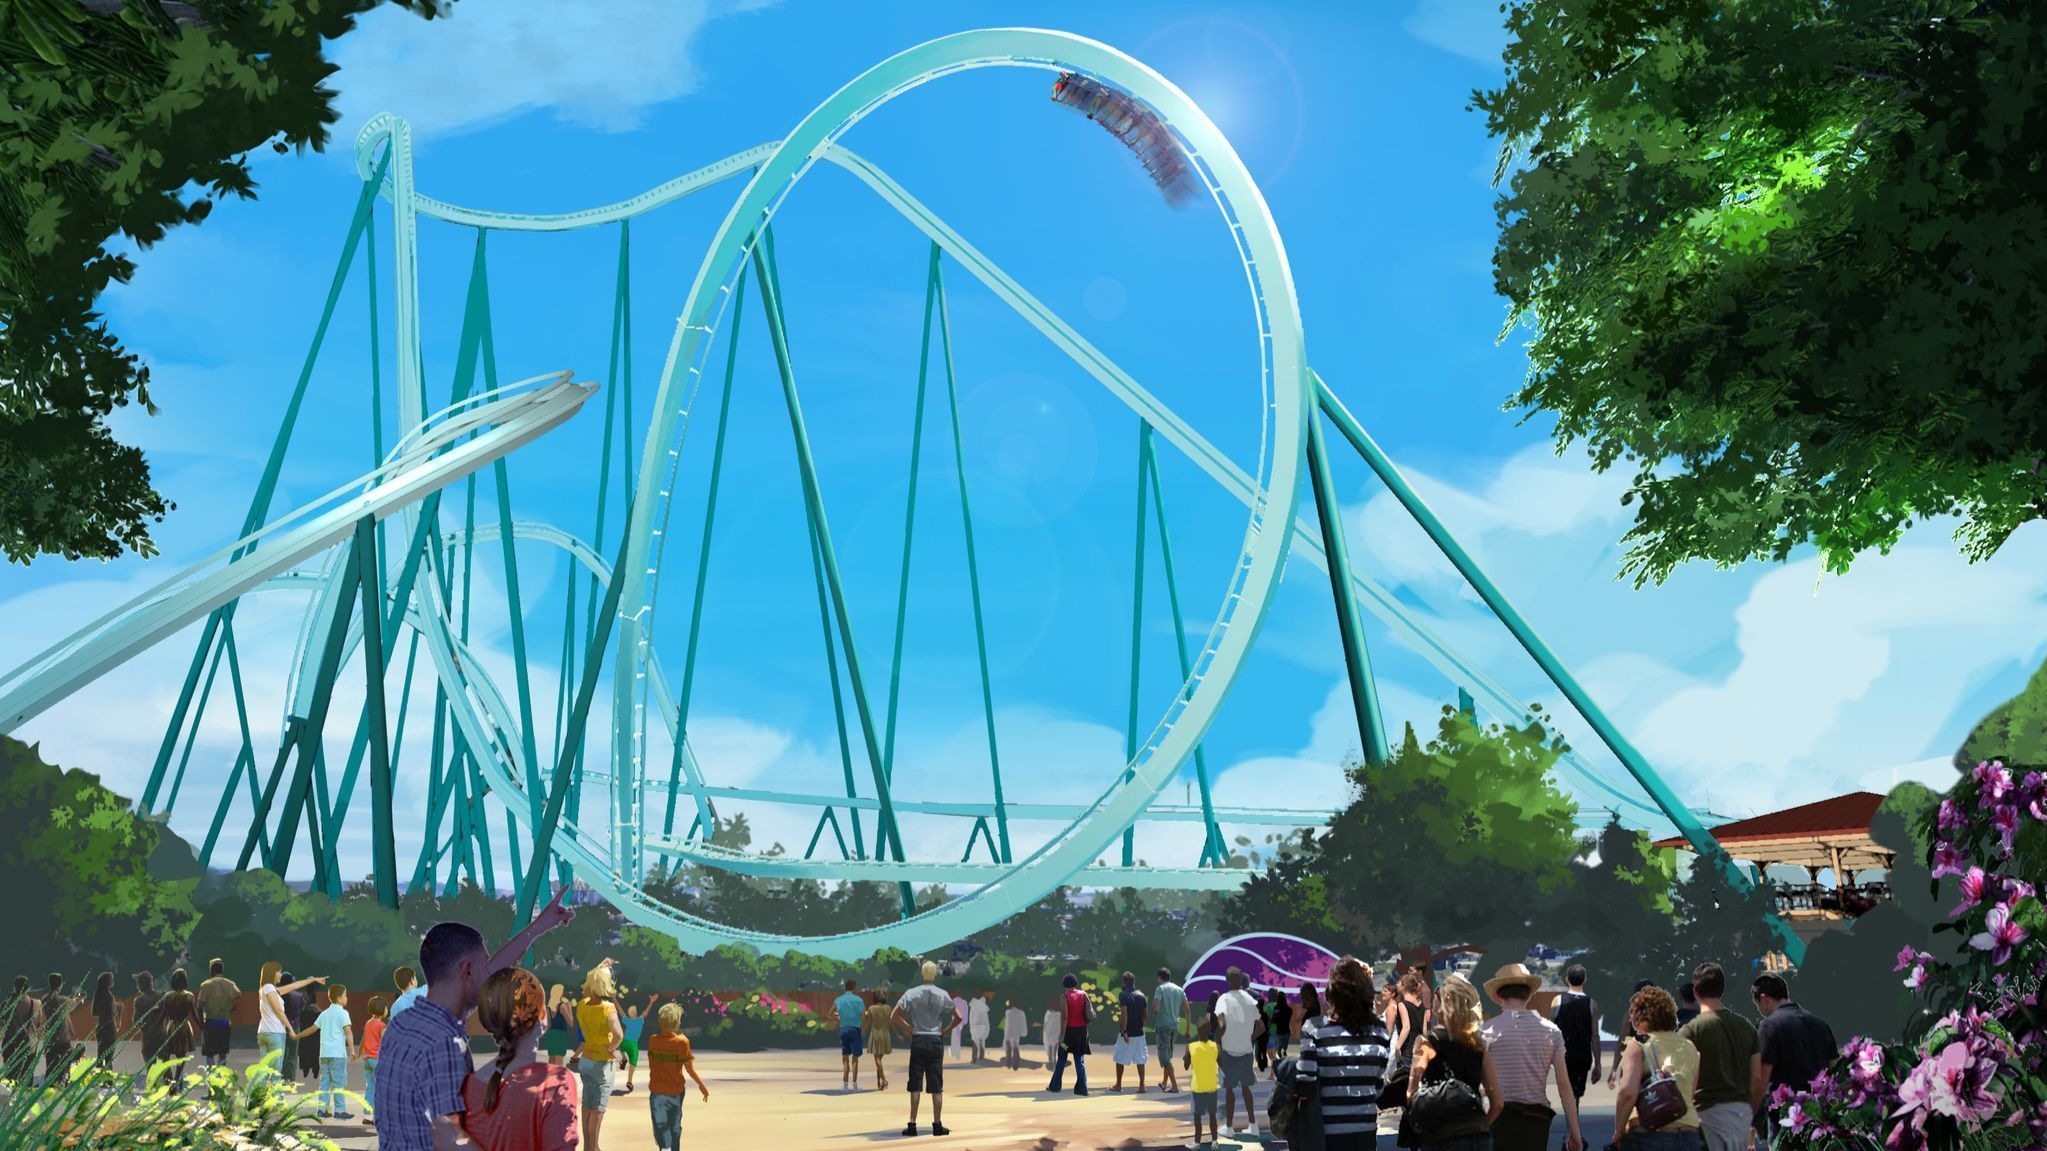 SeaWorld doubles down on thrill rides, with third roller coaster in three years and its tallest yet